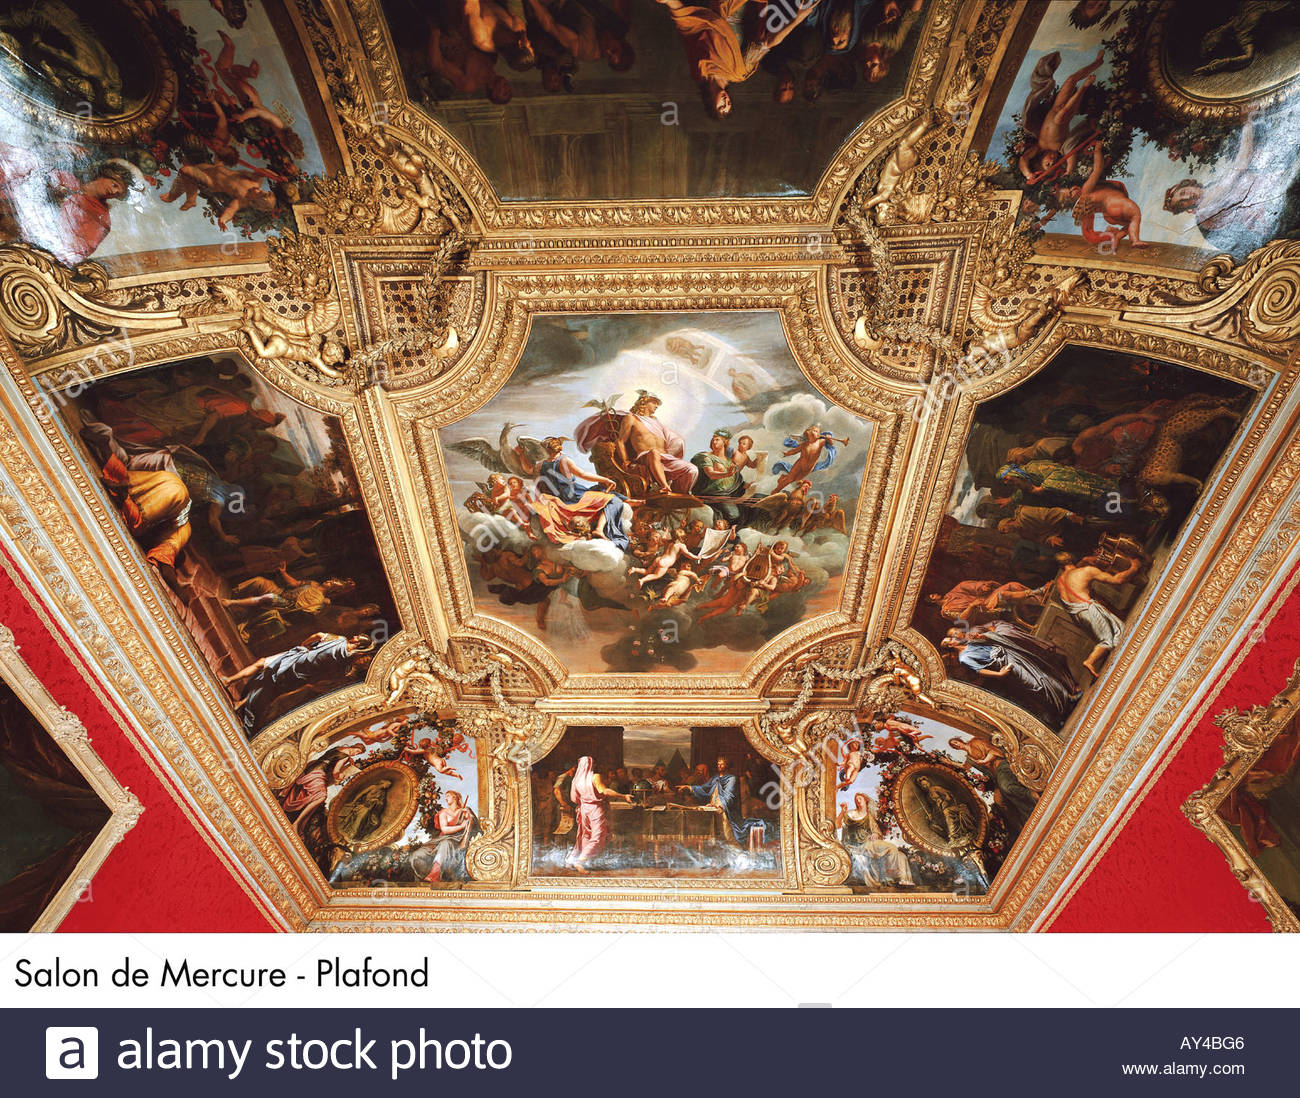 Palace of versailles salon de mercure plafond stock photo for Salon de versailles